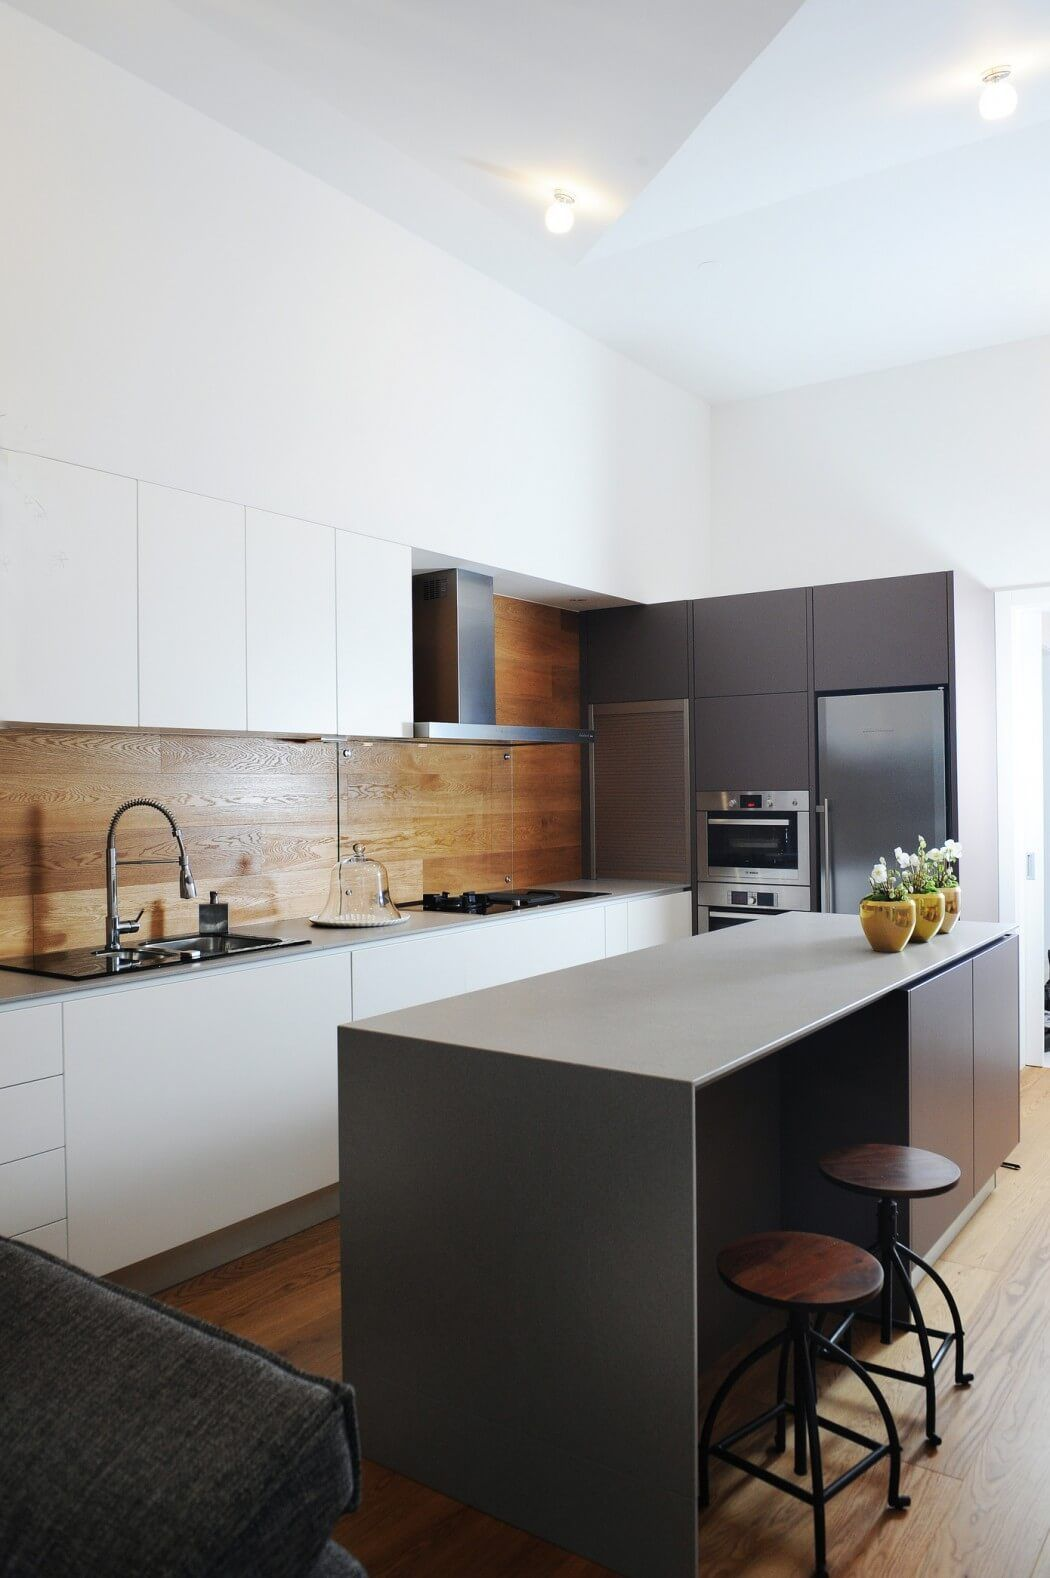 100 Idee Di Cucine Moderne Con Elementi In Legno Contemporary Kitchen Cabinets Kitchen Cabinet Design Minimalist Kitchen